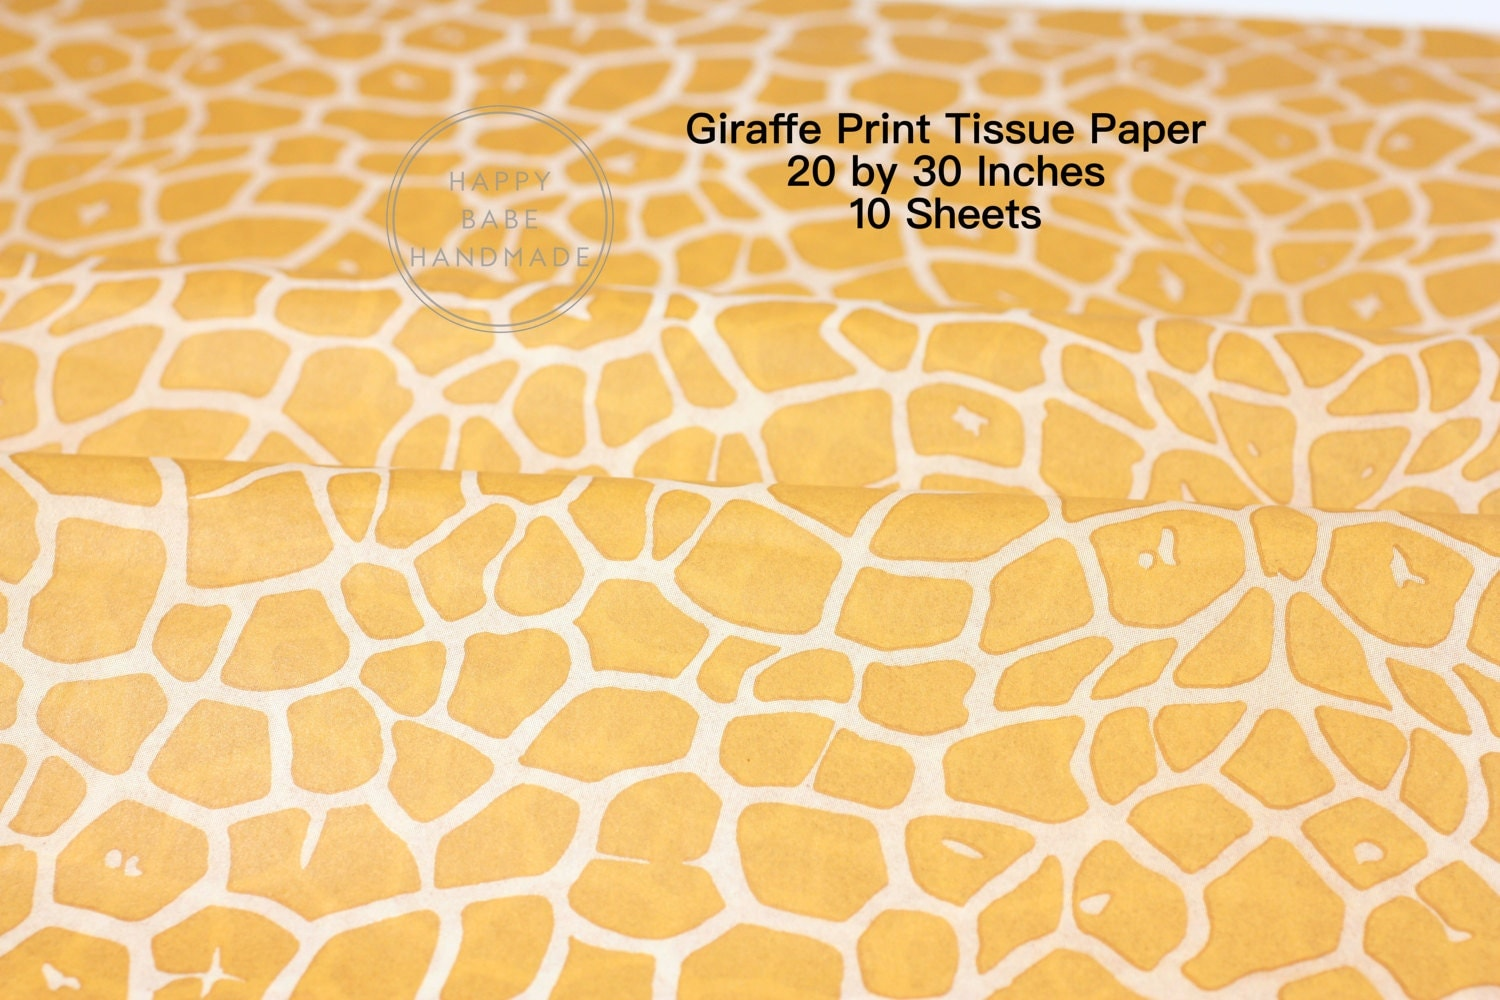 animal print tissue paper Find great deals on ebay for animal print tissue paper and zebra tissue paper shop with confidence.